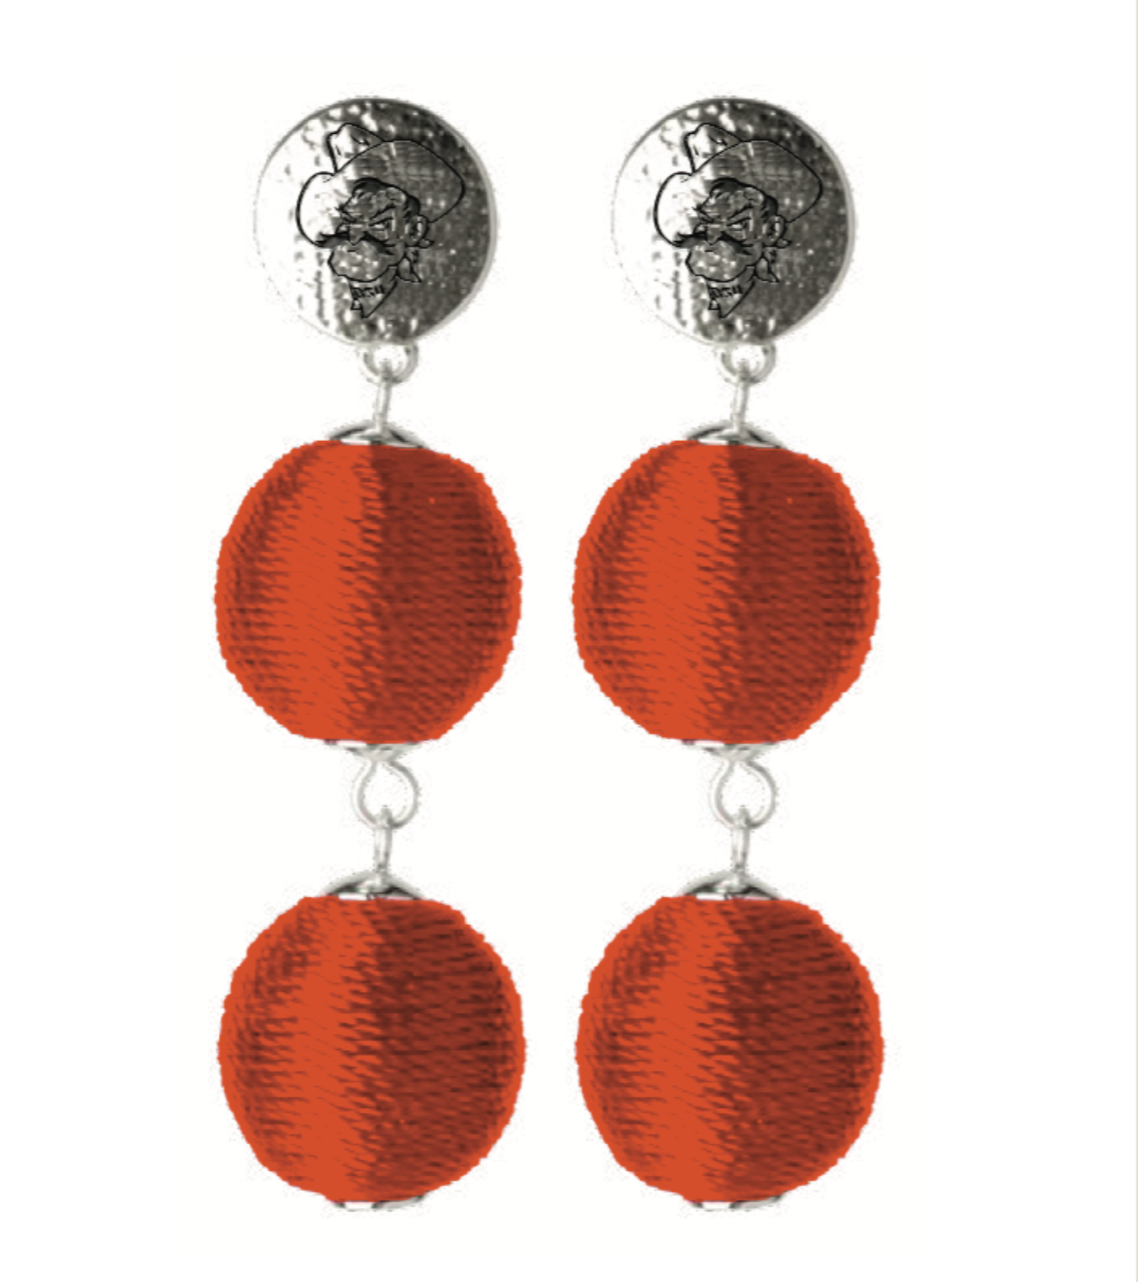 OKLAHOMA STATE COWBOYS SONATA EARRINGS